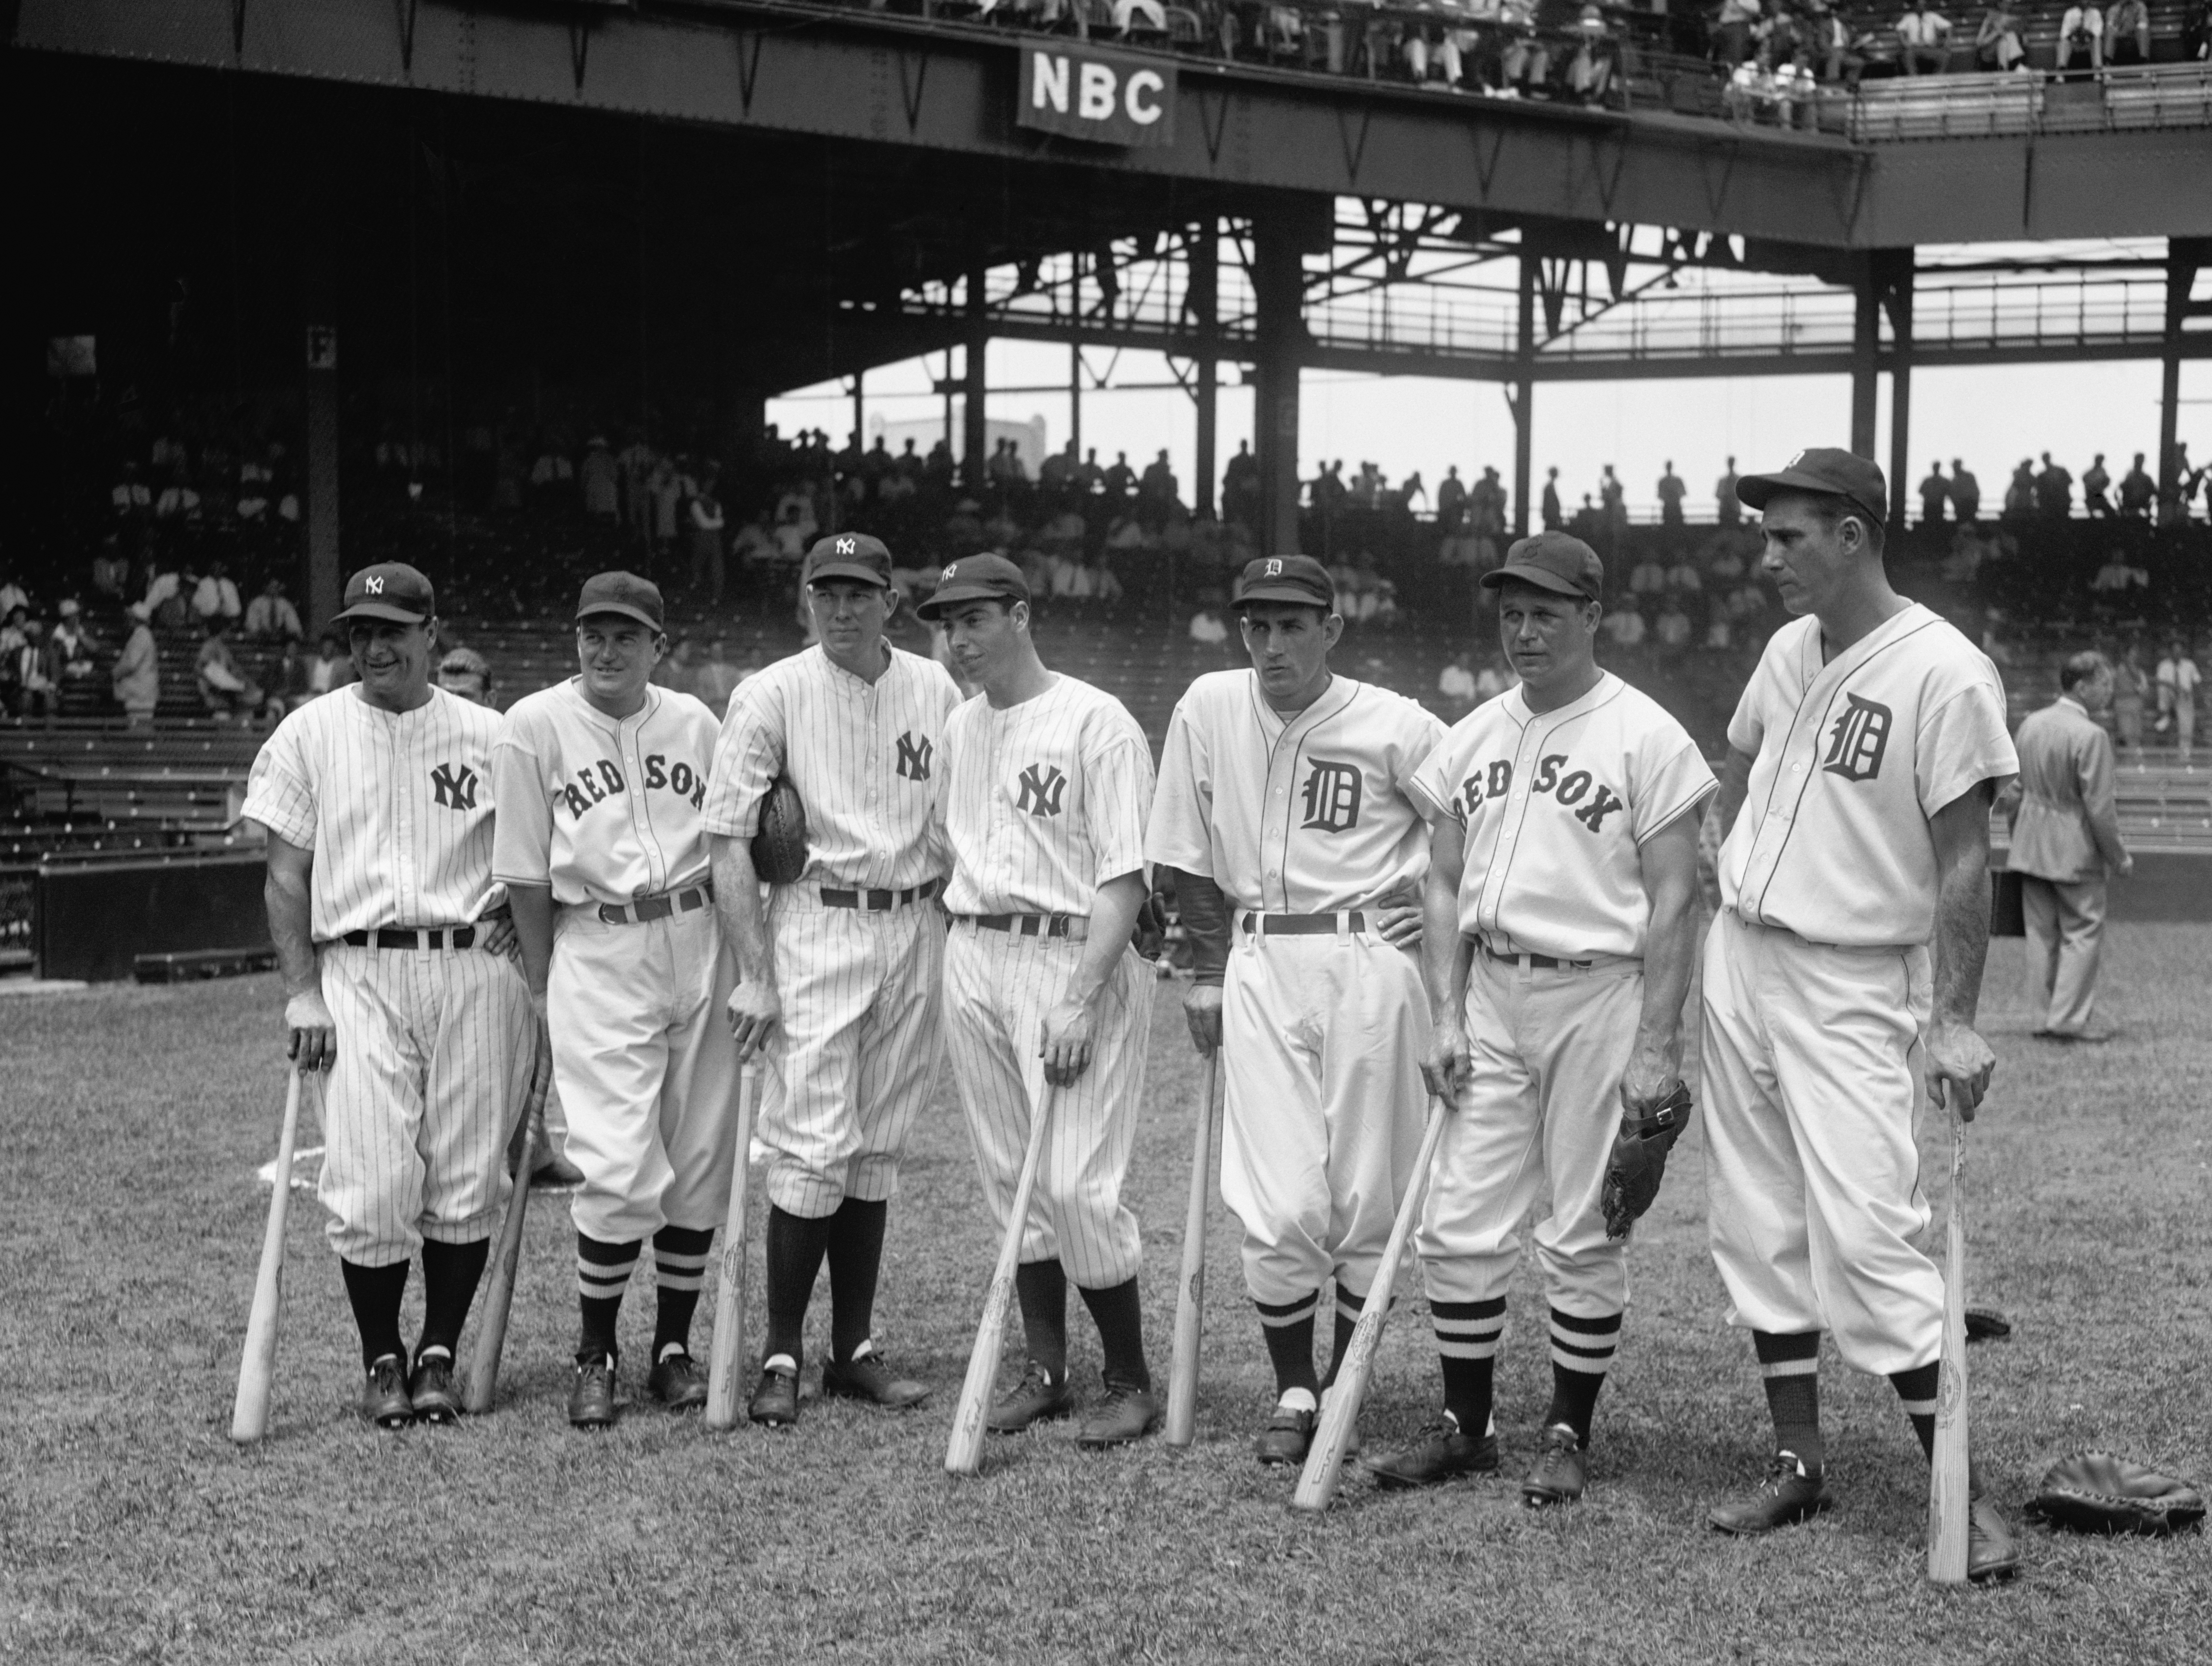 All-Star players, 1937